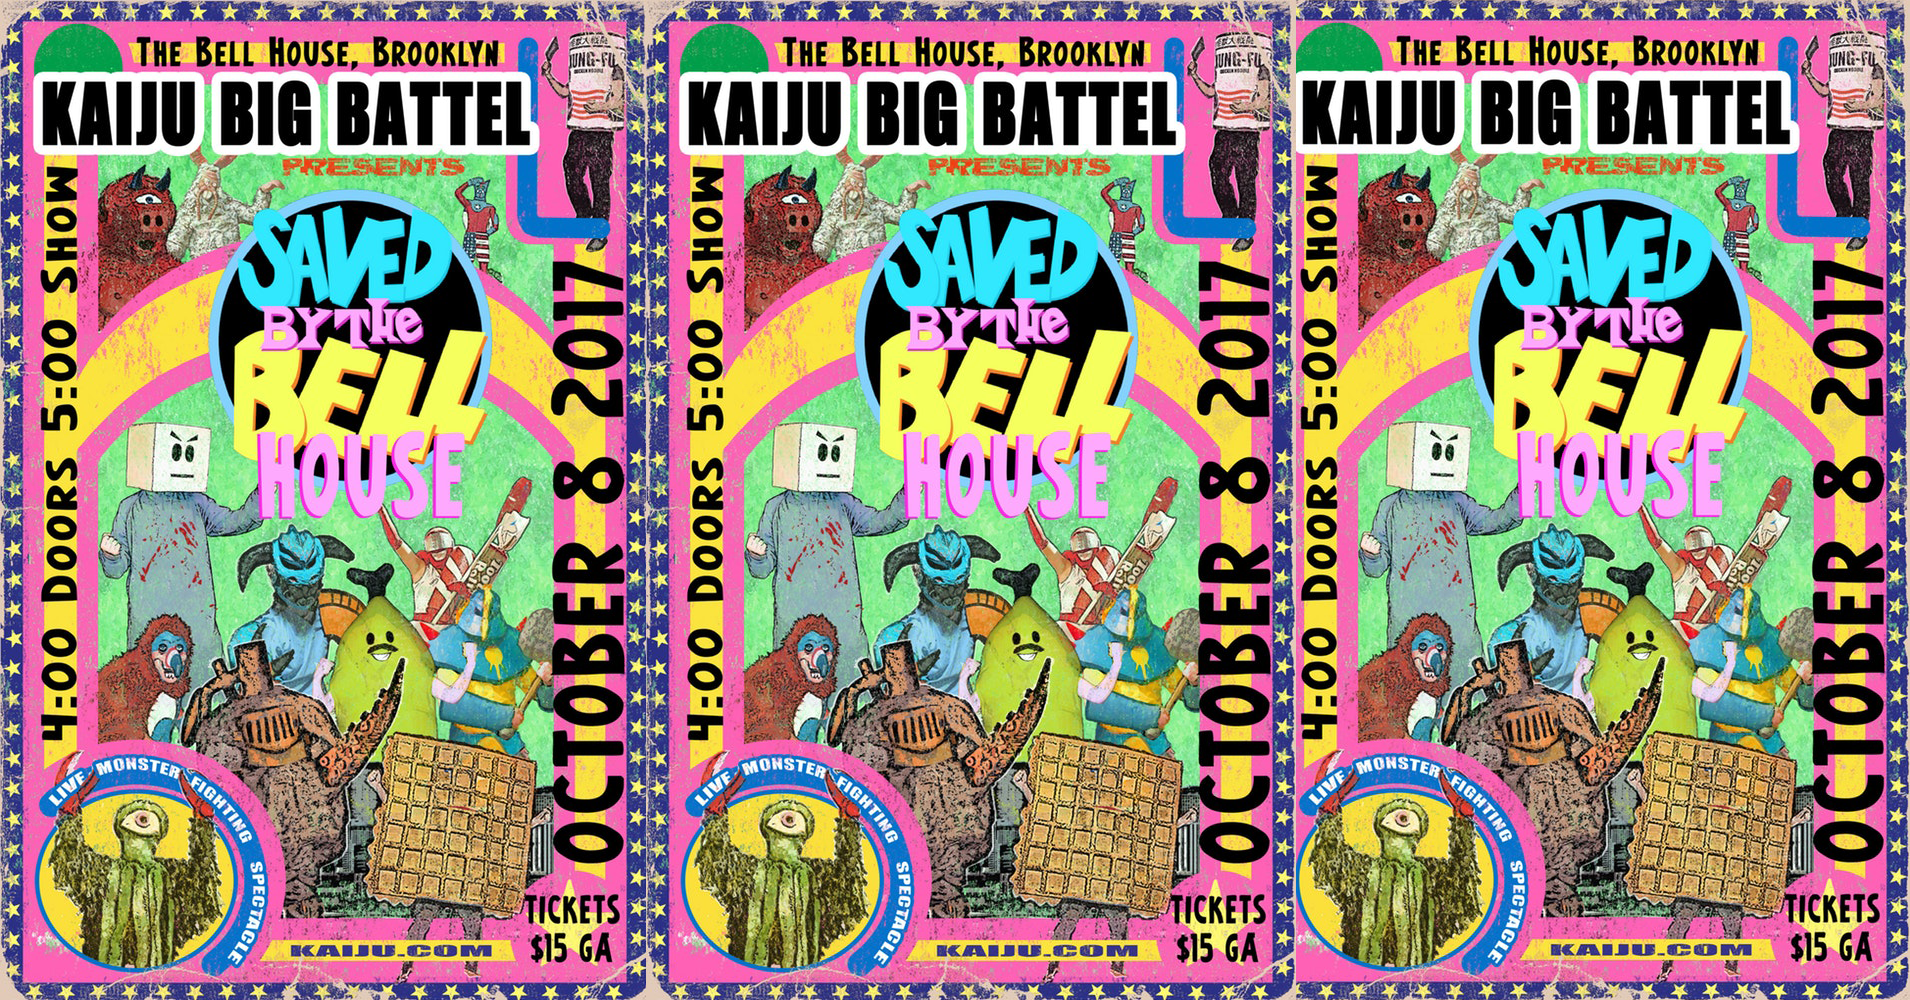 Kaiju Big Battel Saved By The Bell House Maxfun Nyc